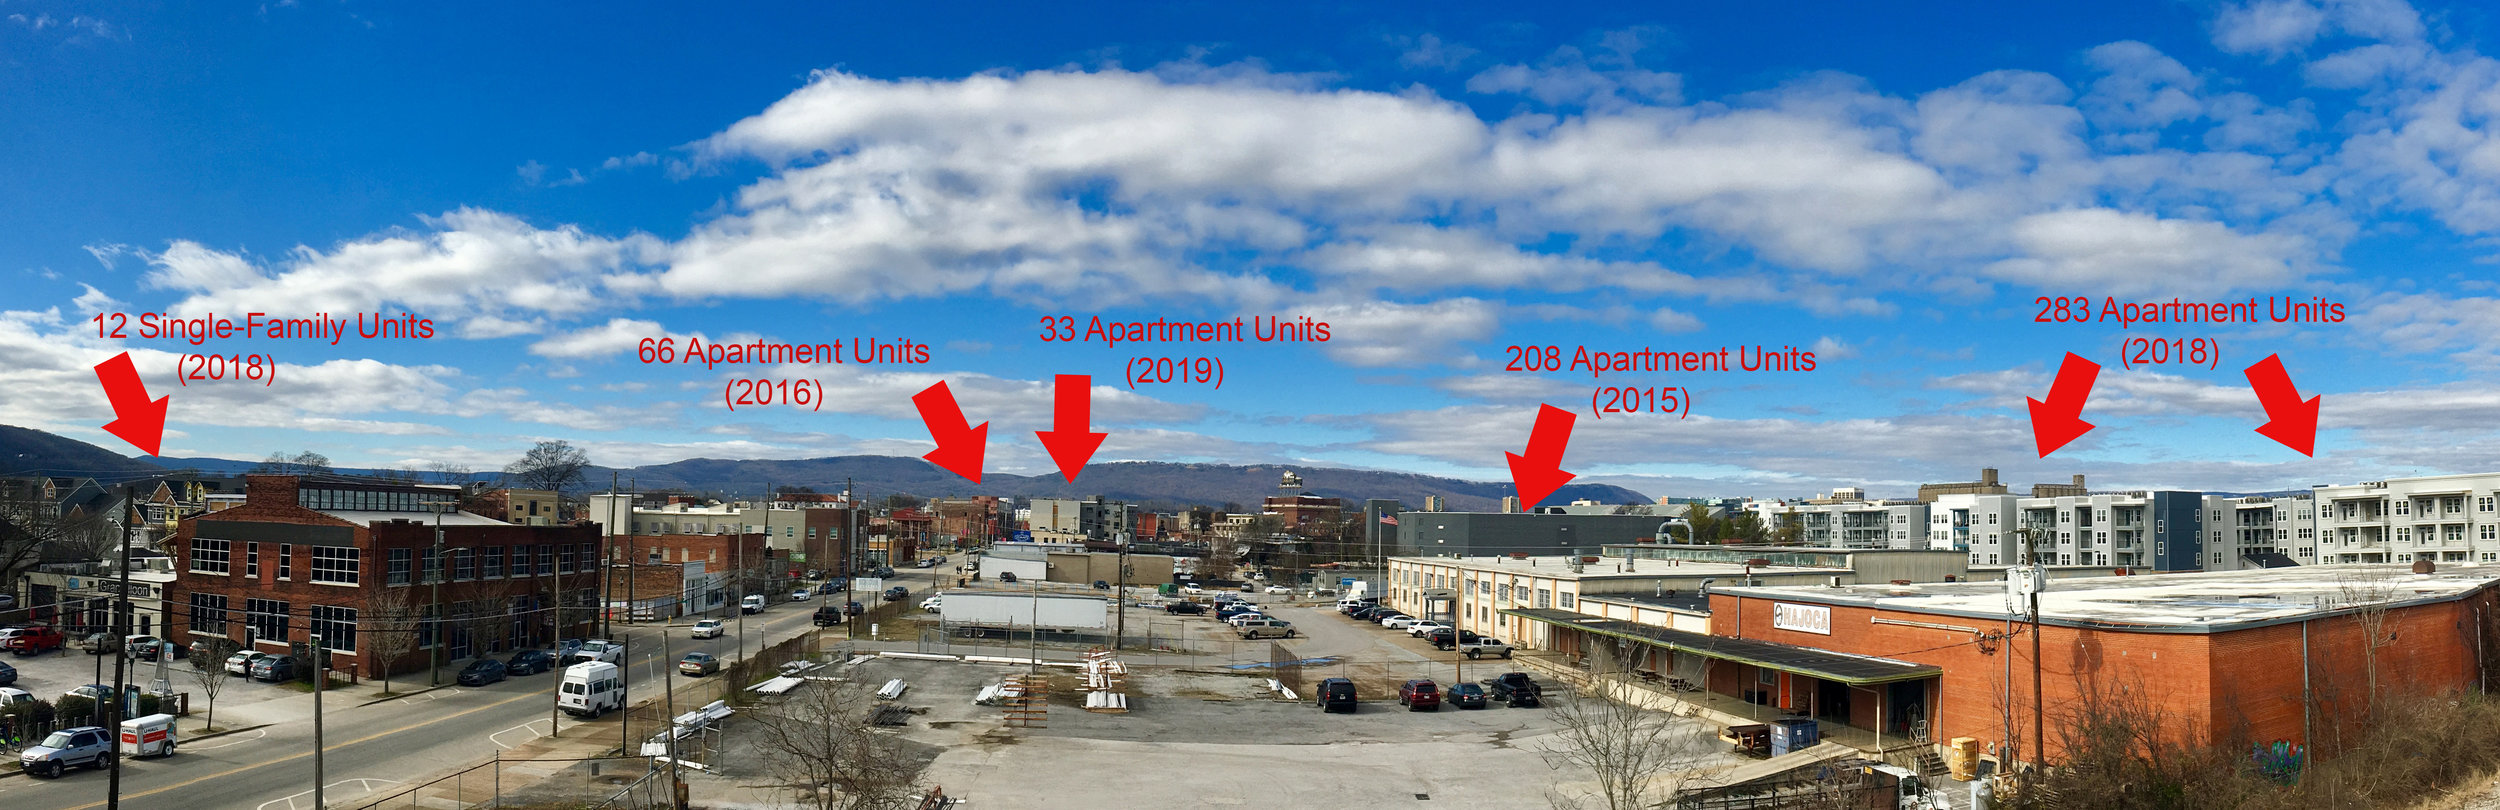 View of Southside, Chattanooga from 509 E Main St. Not pictured: the 584 (at least) other apartment units that are recently completed, under construction, or being planned in the Southside on Cowart, Broad, and Chestnut streets